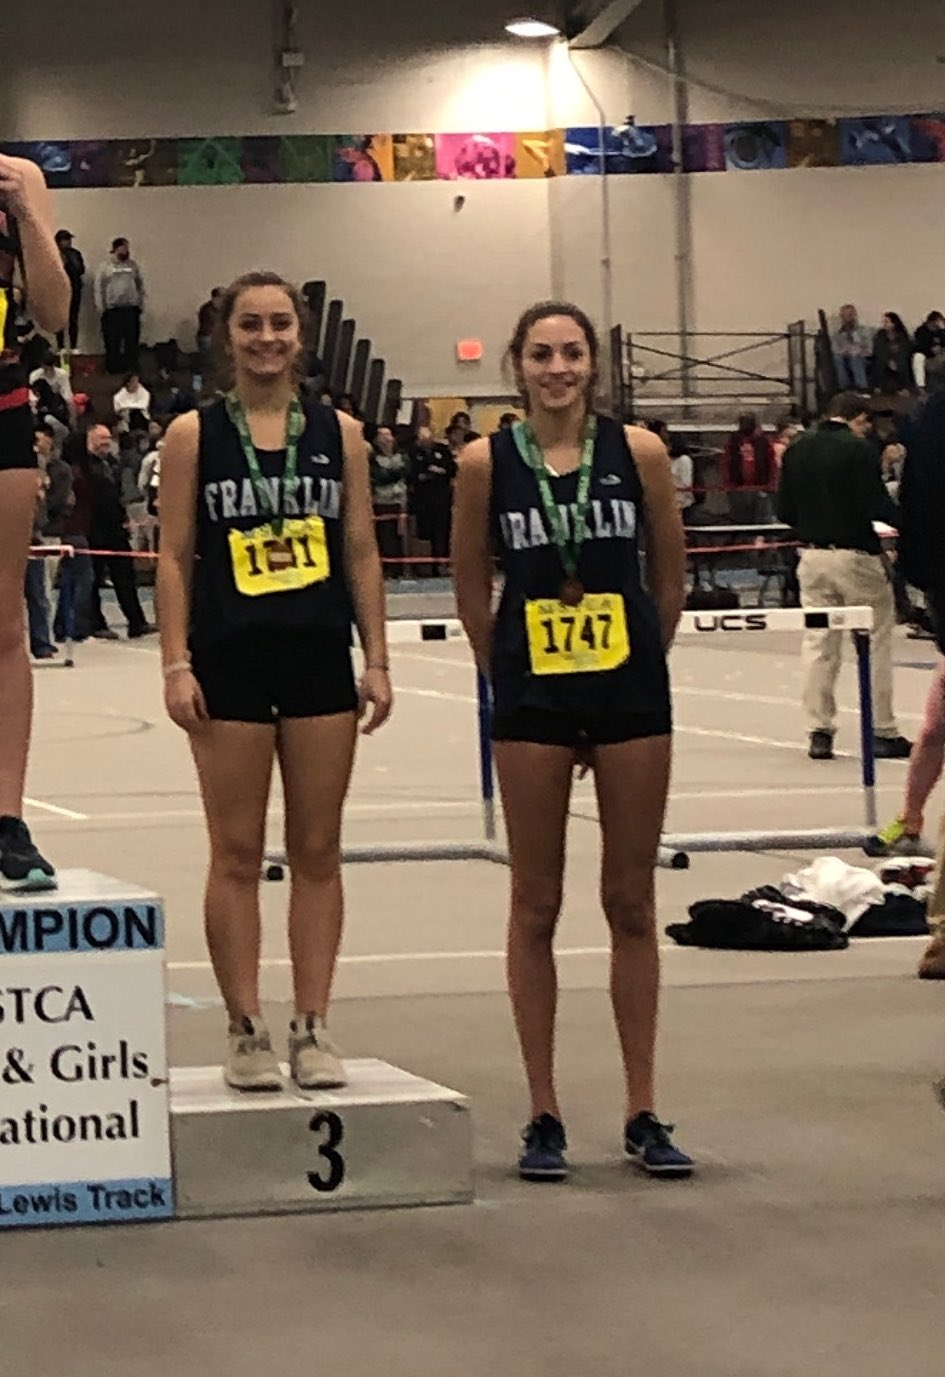 Ava Fraulo and Lindsay Morse scored in the high jump placing 3rd and 4th